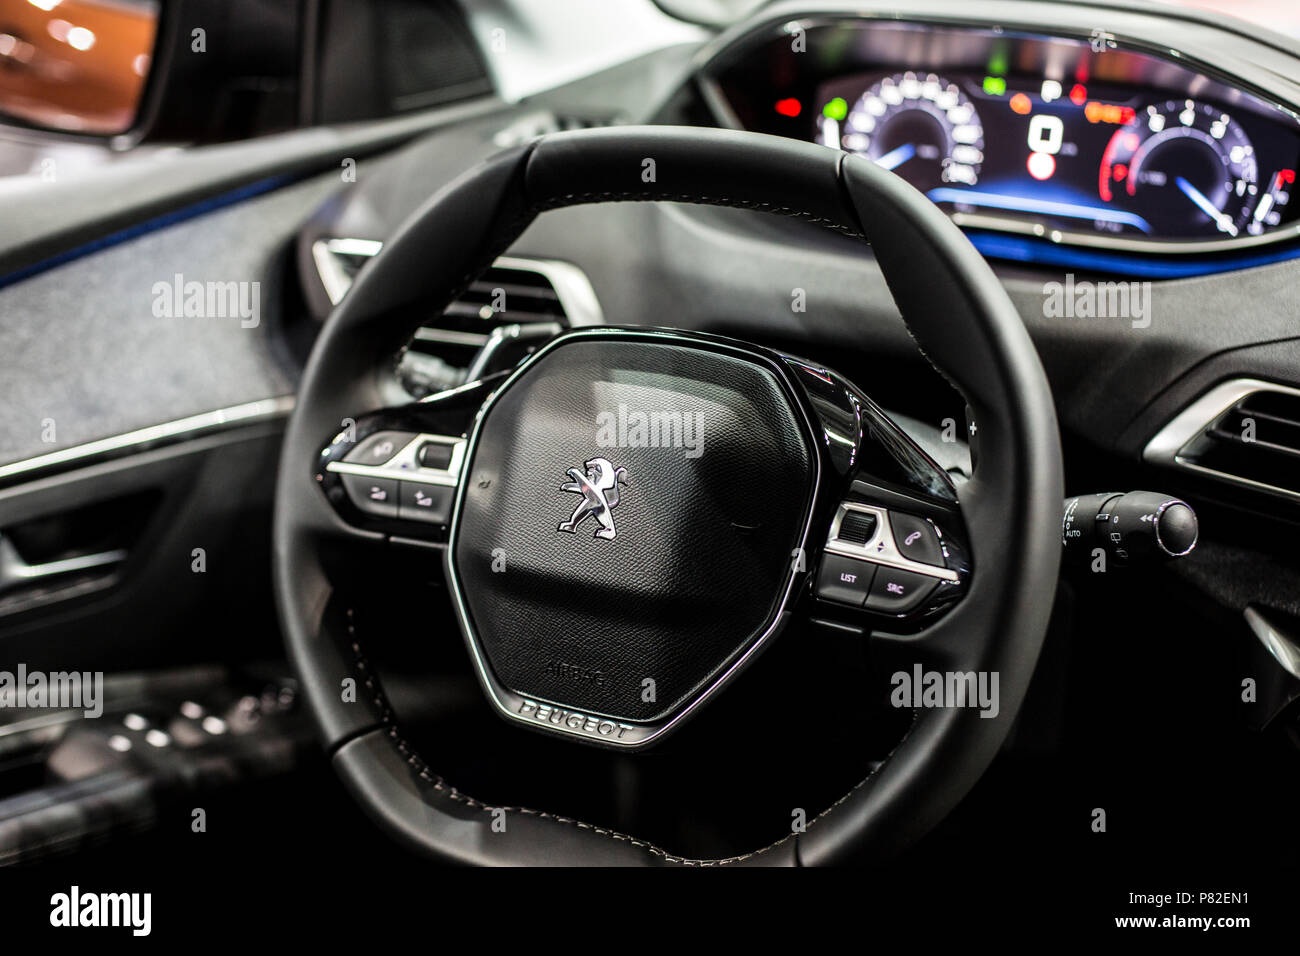 Minsk, May 2018 Interior of peugeot 3008 Stock Photo: 211497133 - Alamy